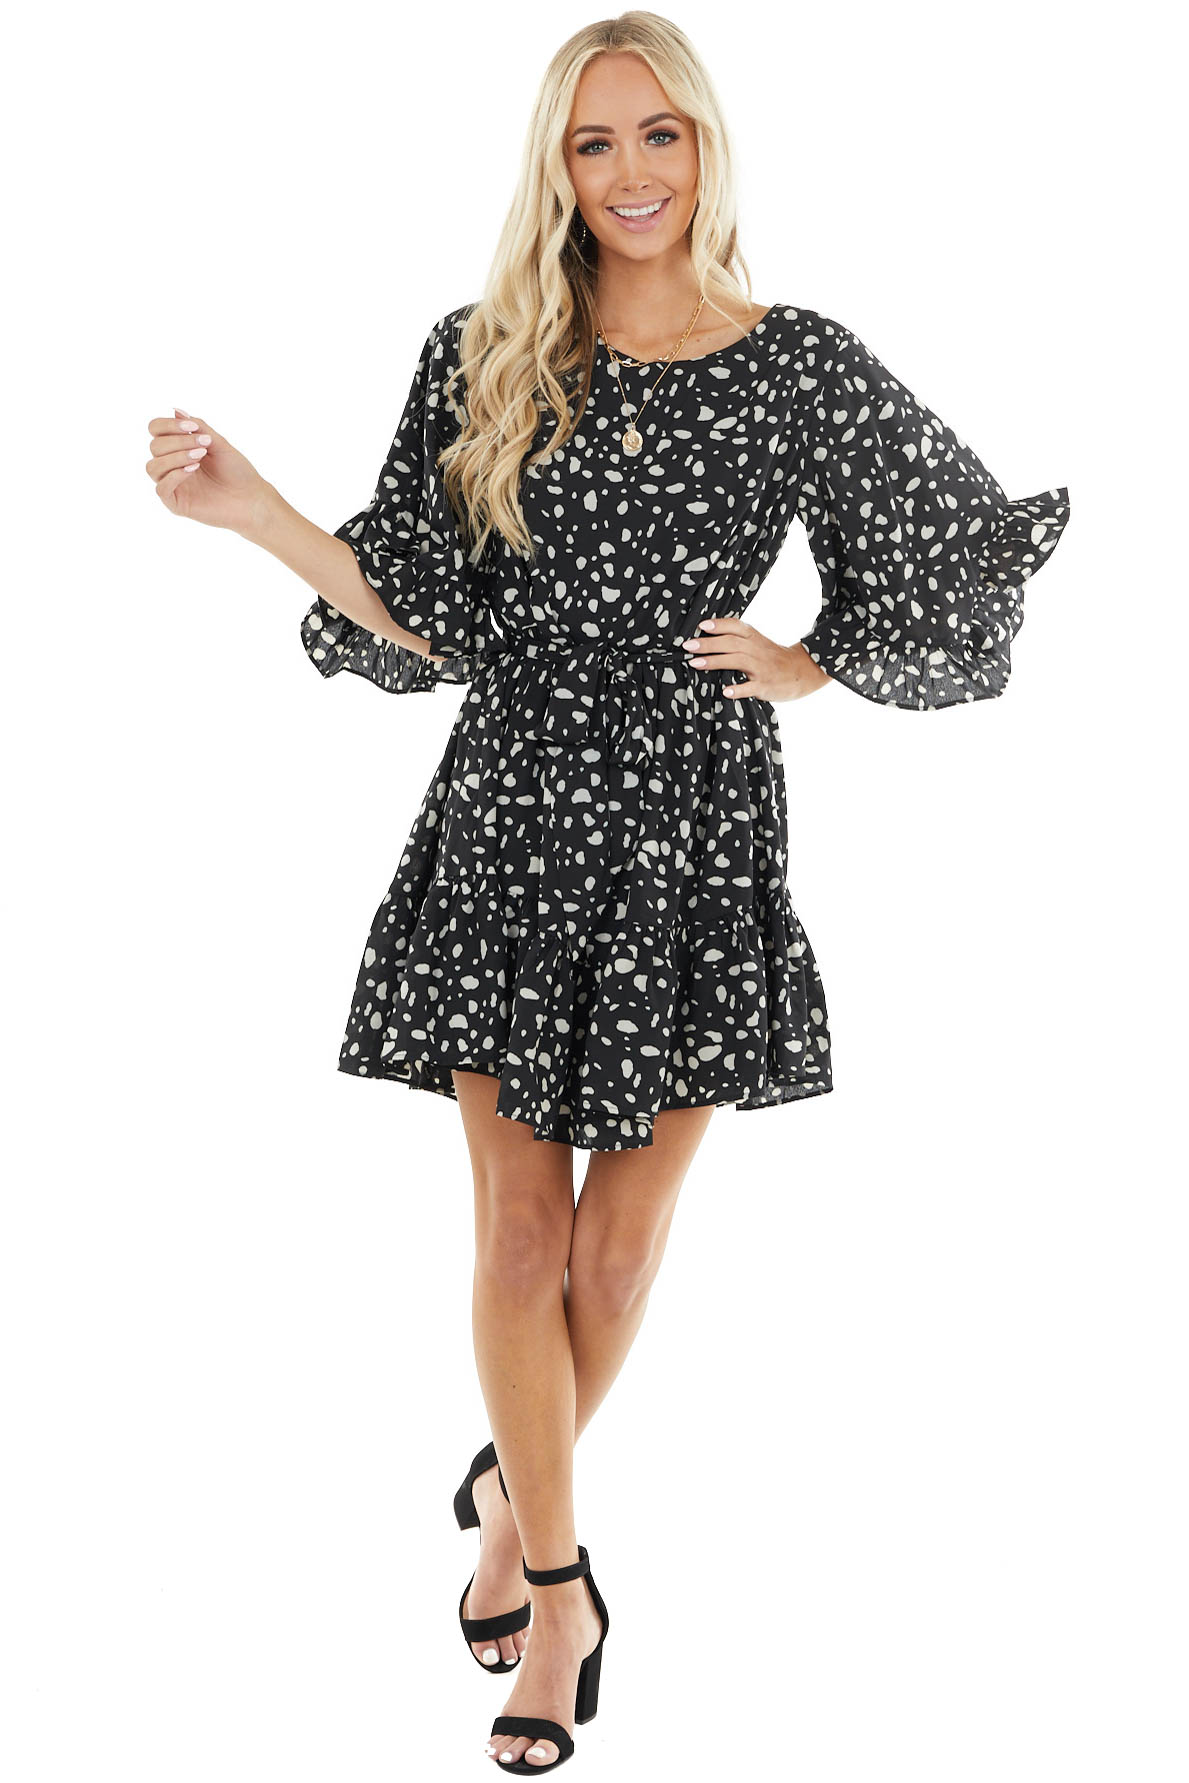 Black and Ivory Abstract Print 3/4 Sleeve Dress with Ruffles